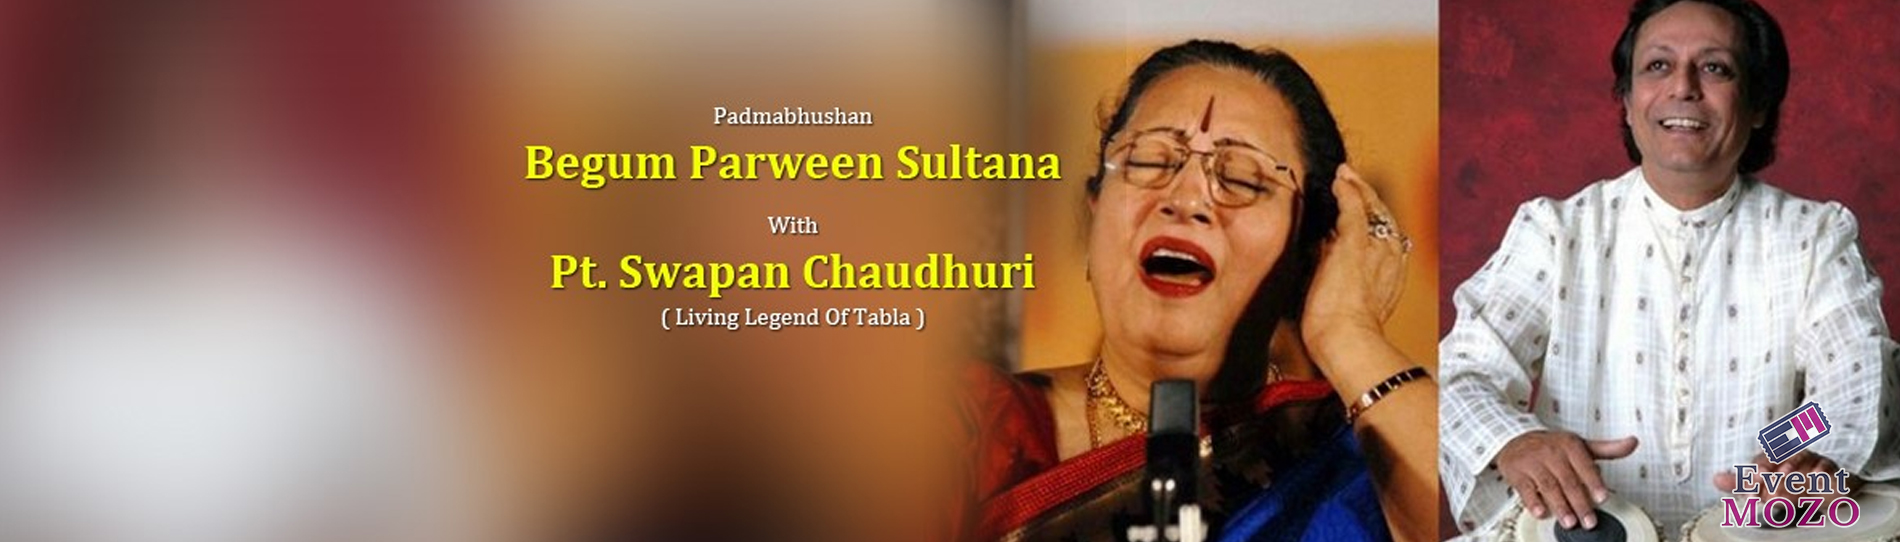 EventMozo Padmabhushan Begum Parween Sultana Live in Concert with Ma....